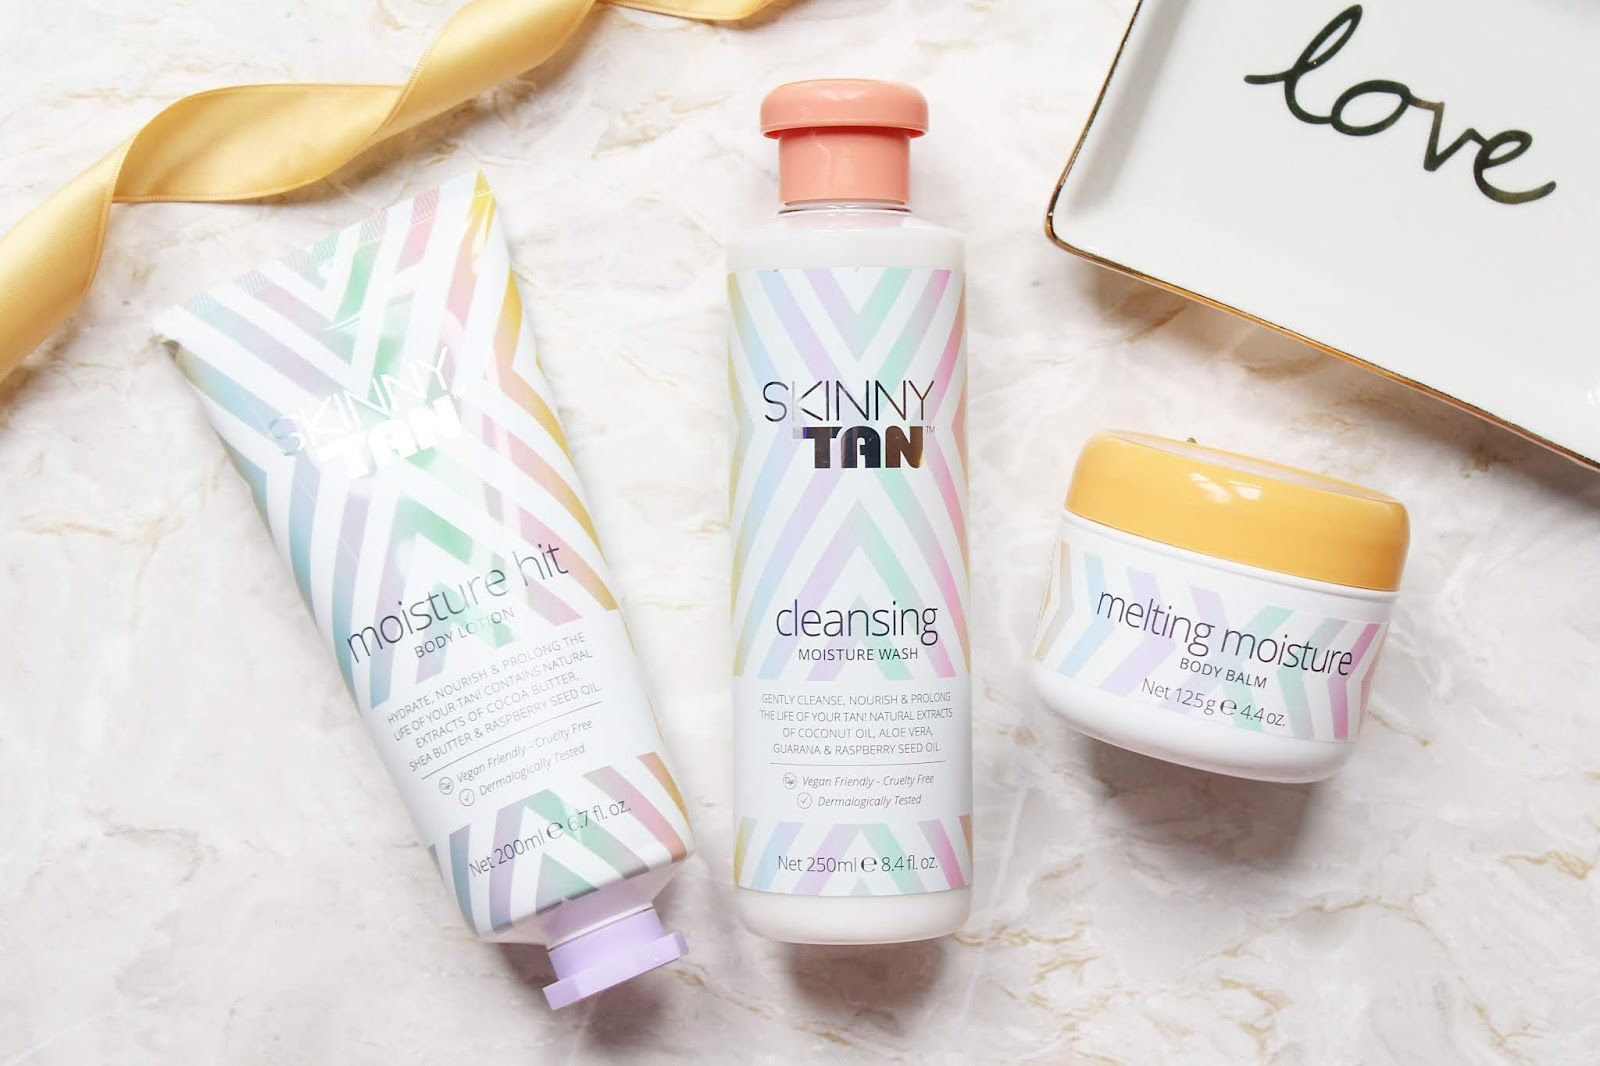 Skinny Tan Body Care Trio